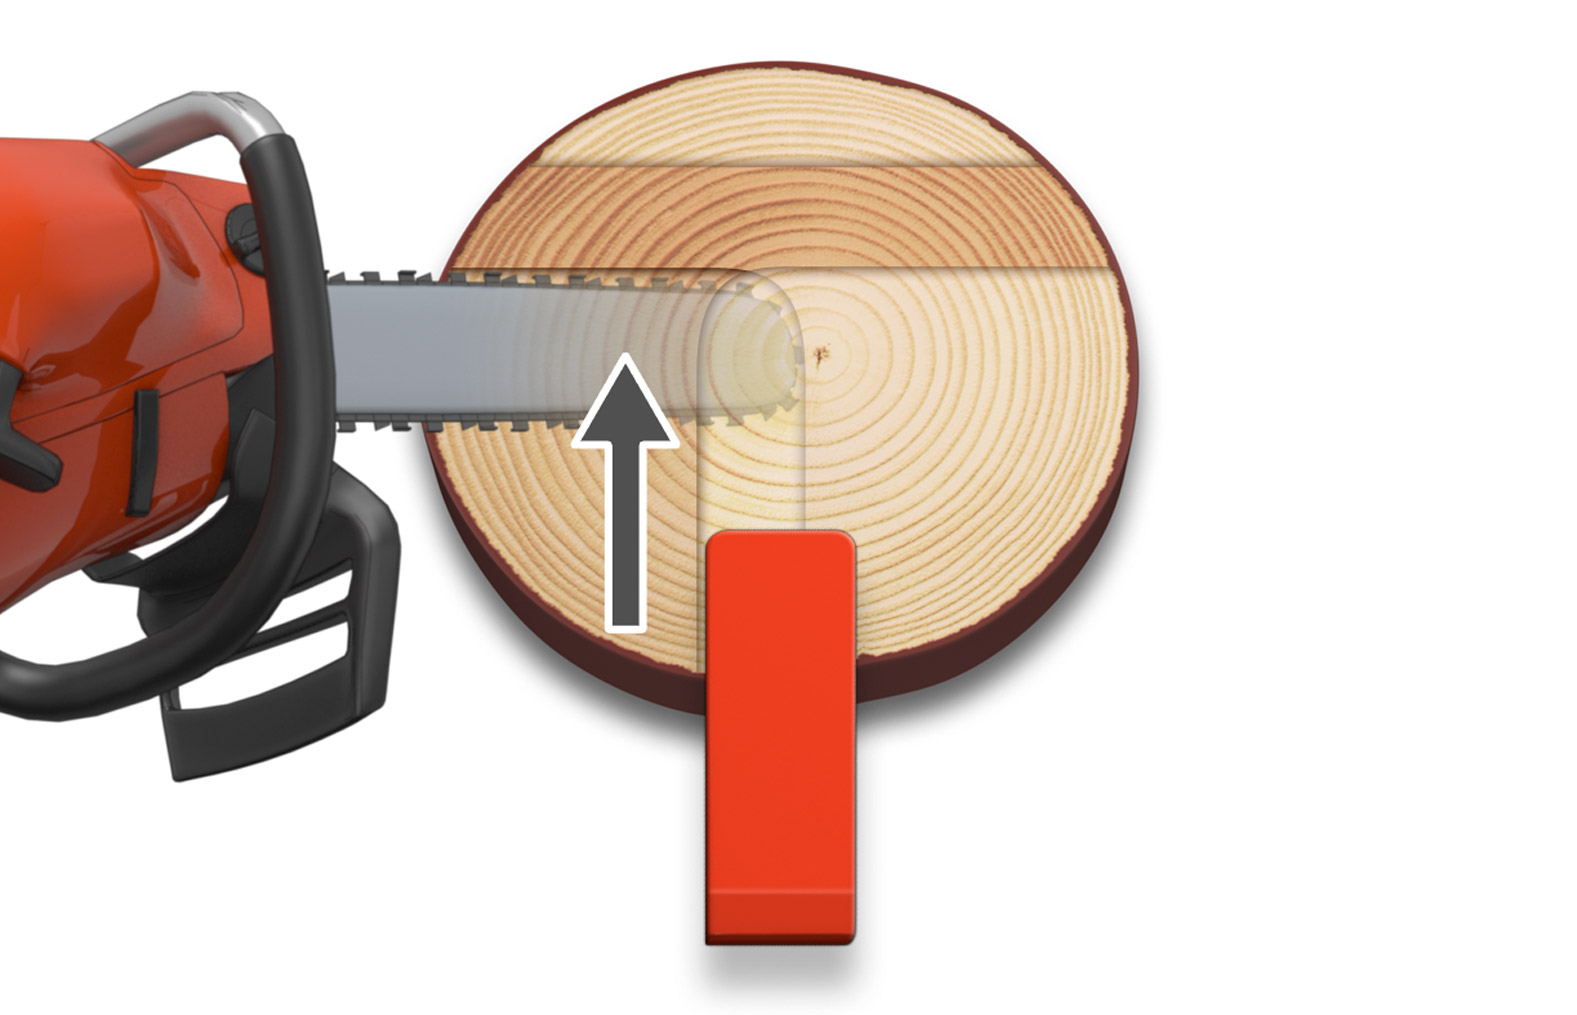 Illustration showing how a chainsaw is used to cut the saved edge